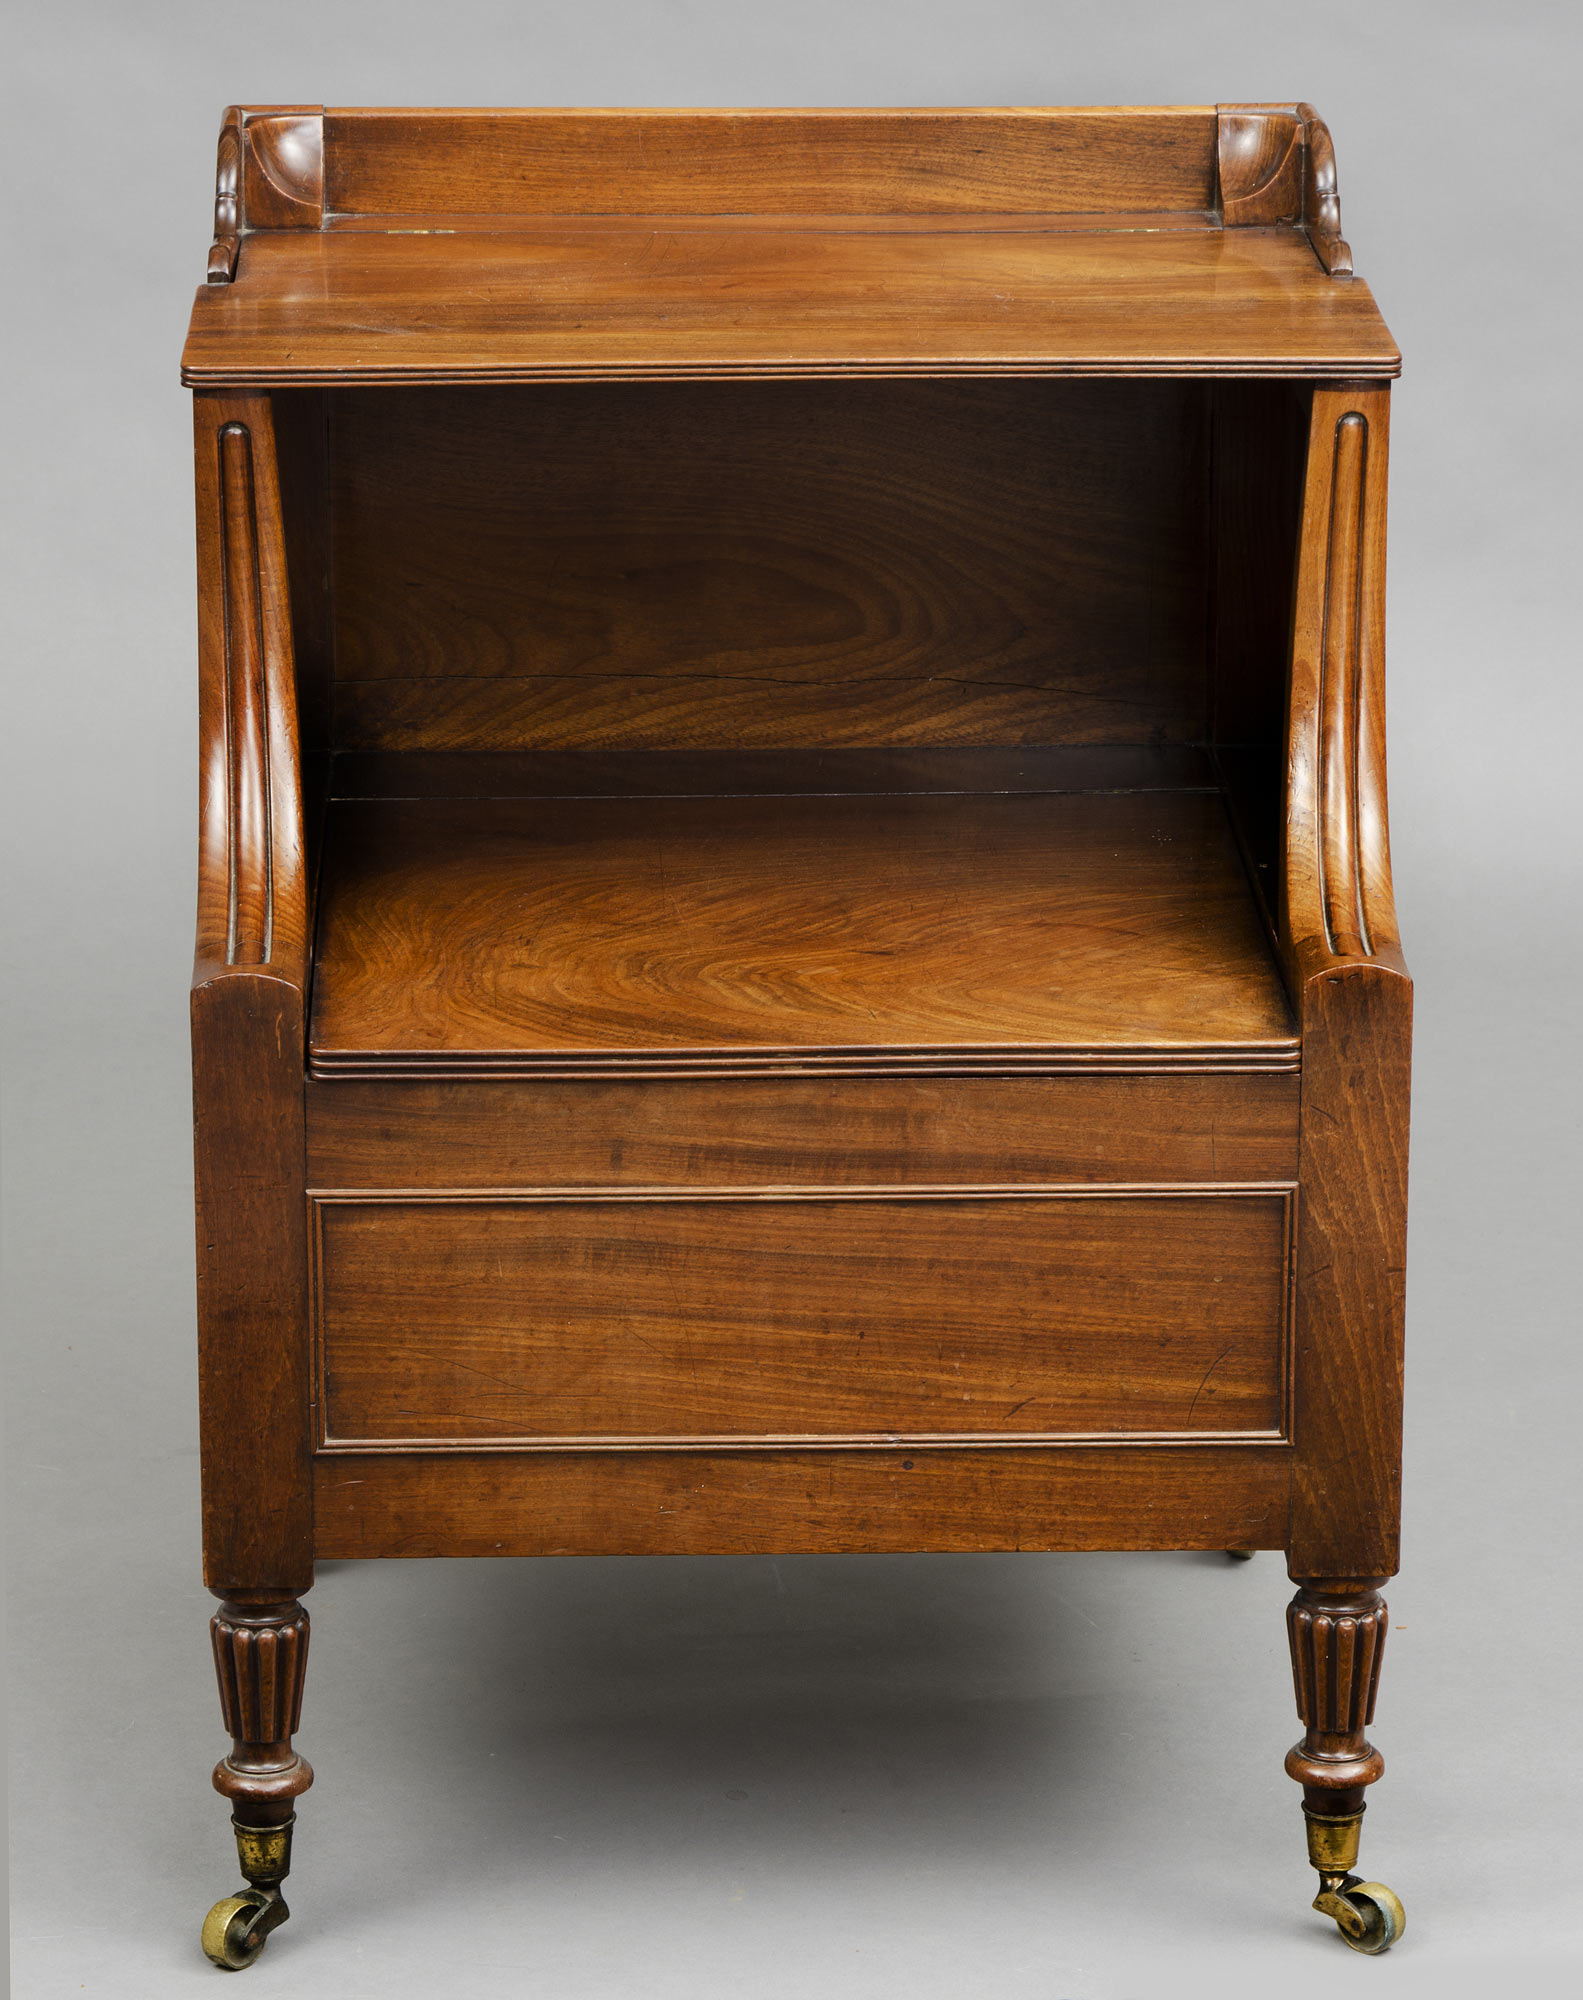 ... English Antique Georgian Lancashire Commode Or Bedside Table ...